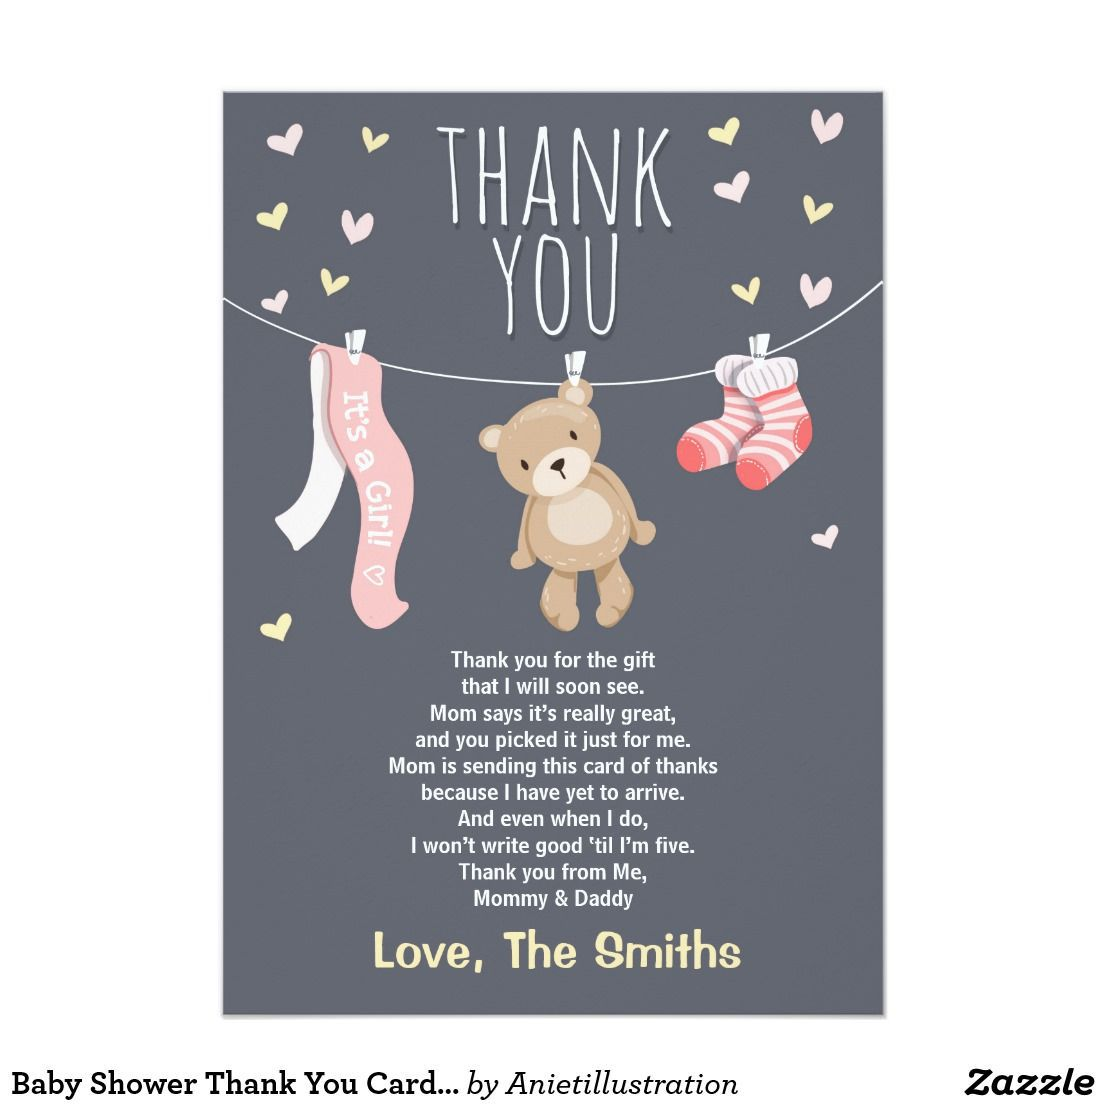 004 Stirring Thank You Card Wording Baby Shower Design  Note For Money Someone Who Didn't Attend HostesFull